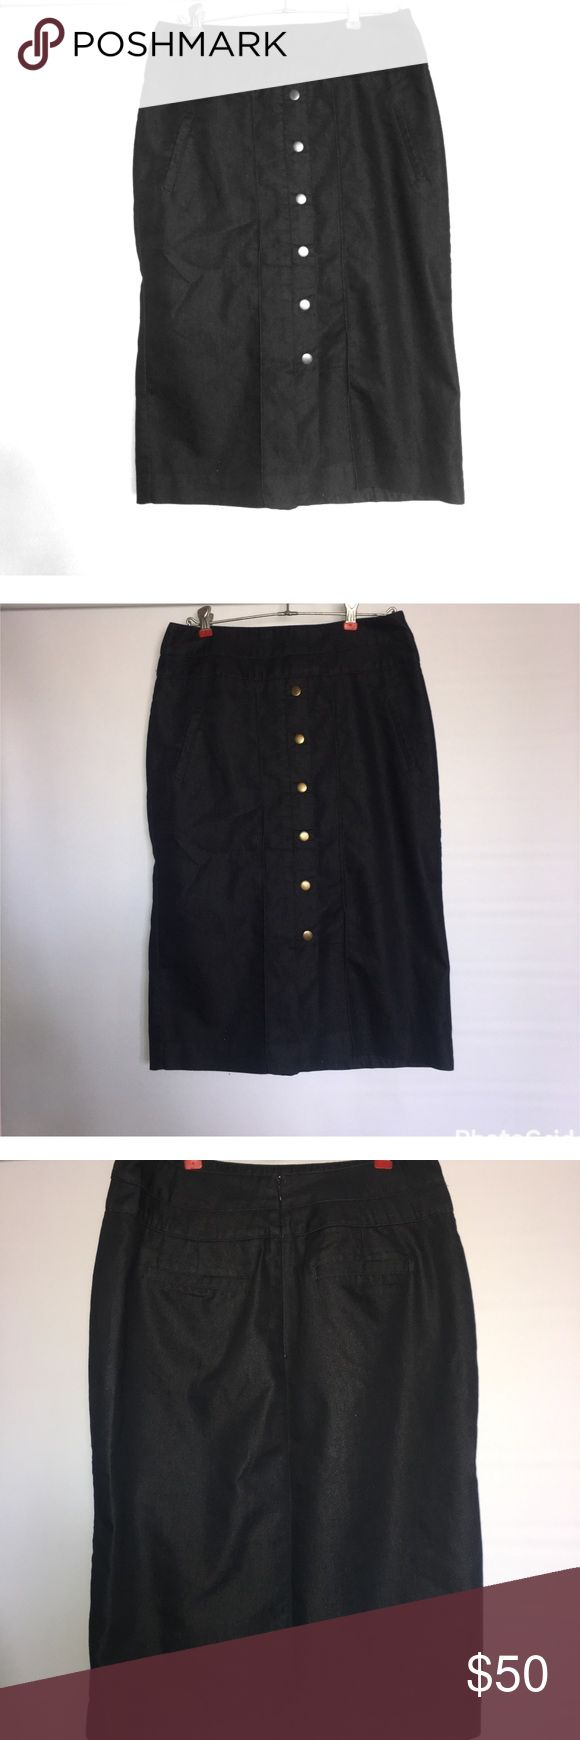 Black pencil skirt NWOT Worthington Black pencil skirt button up the front zipper in the back size 8 New without tags Worthington Skirts Pencil